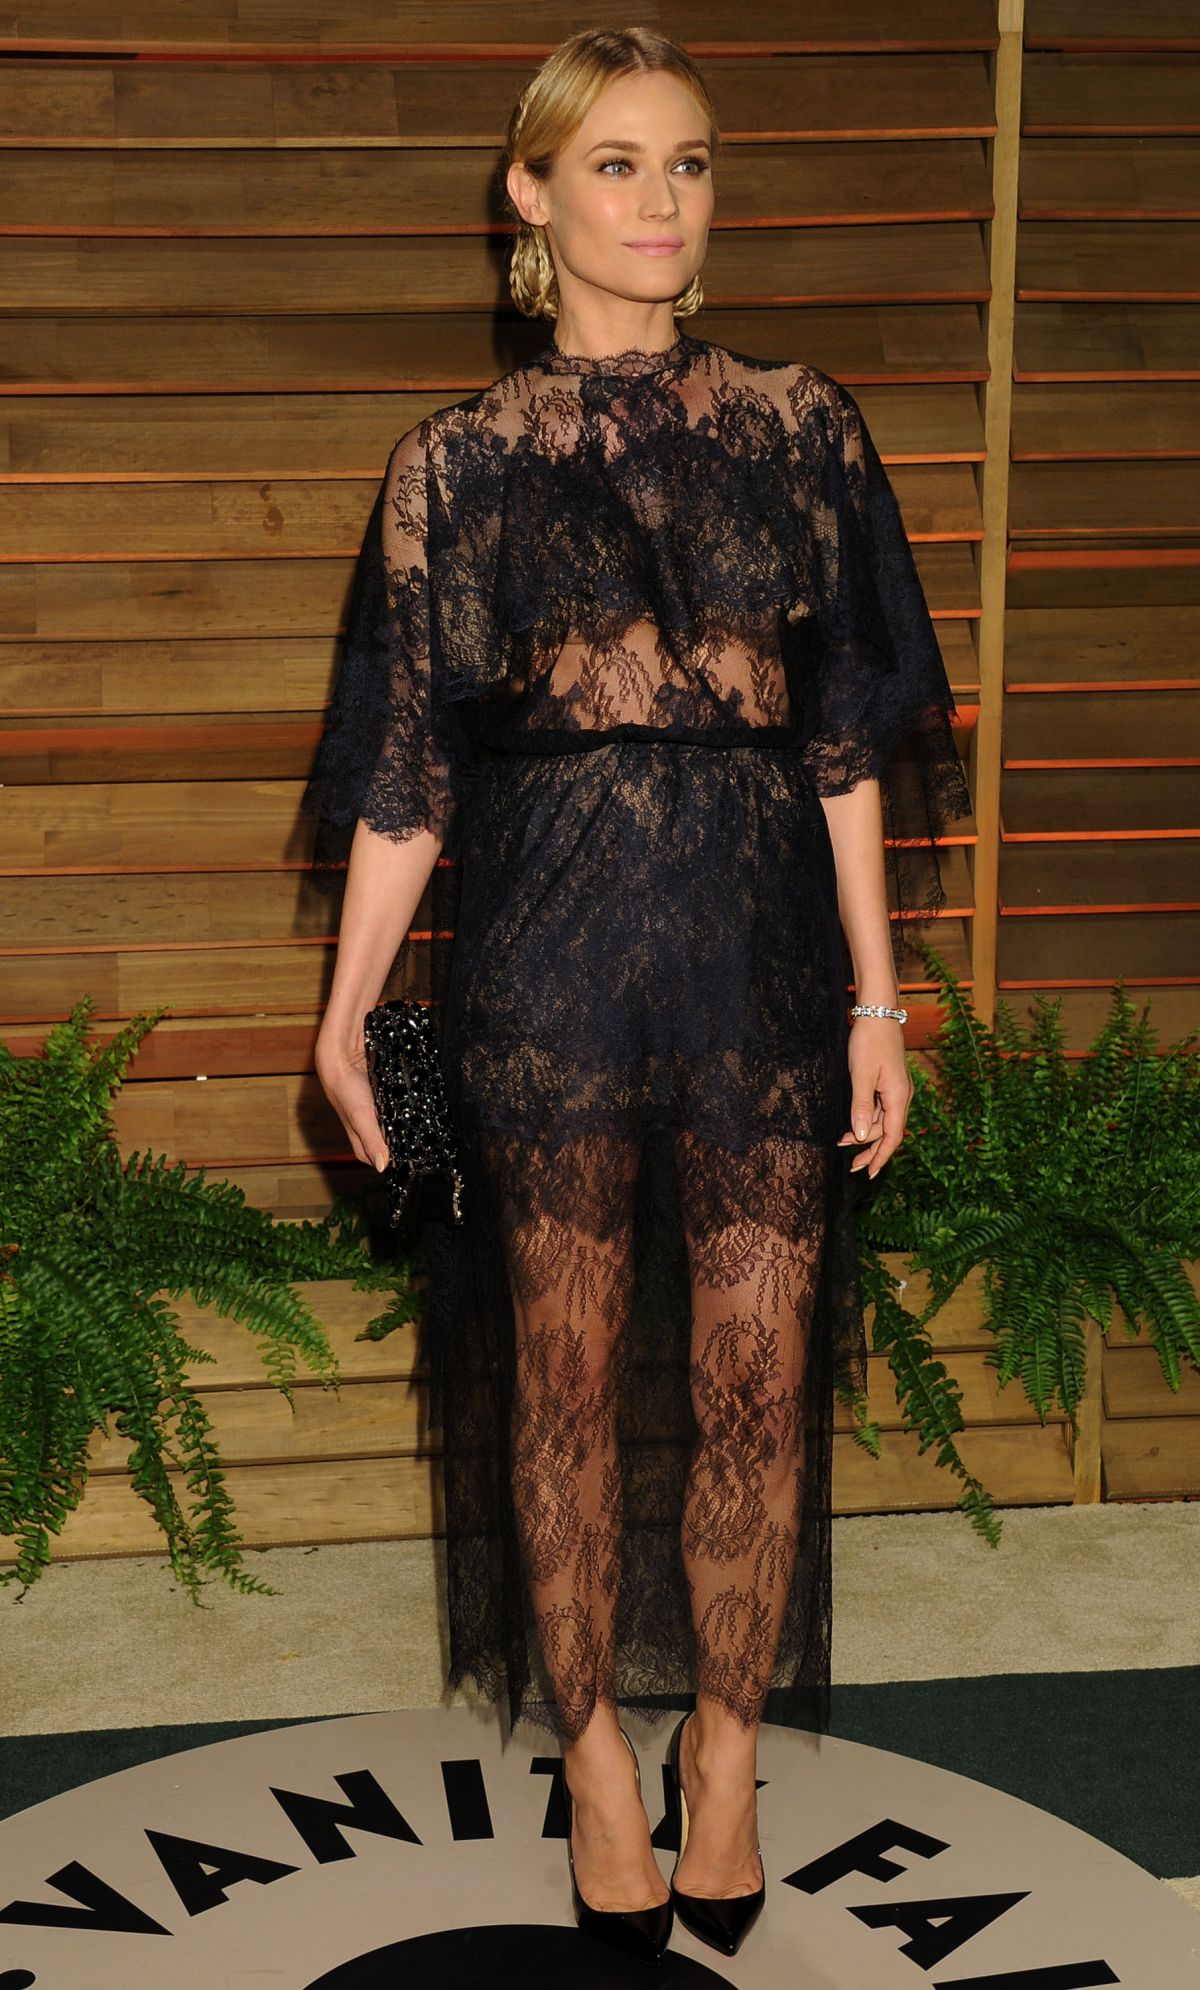 DIANE KRUGER at Vanity Fair Oscar Party in Hollywood